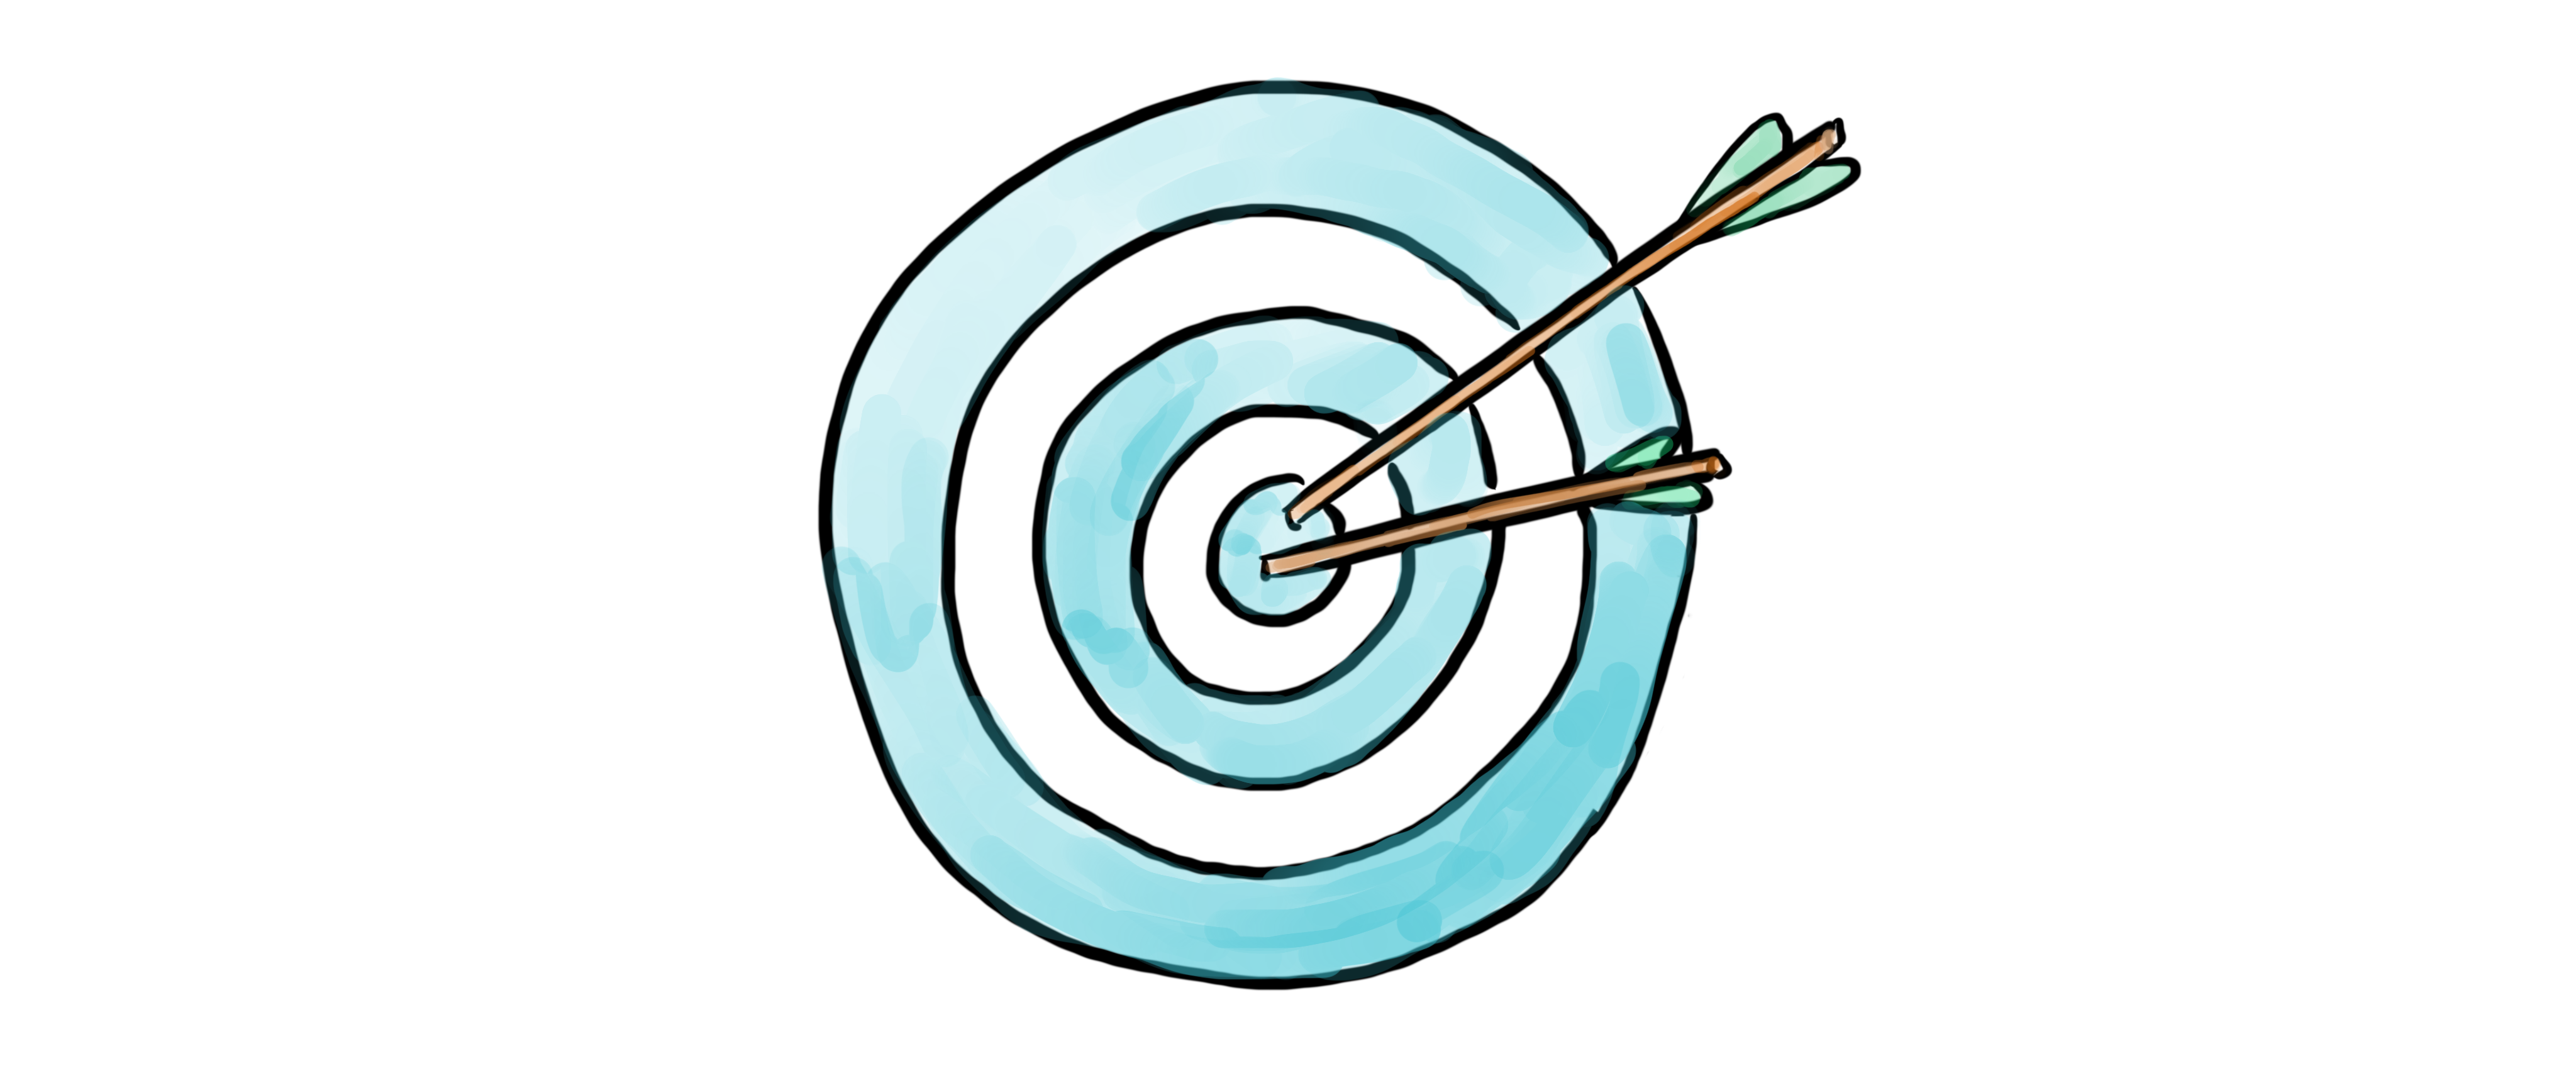 Goals clipart know yourself. Okr should you use